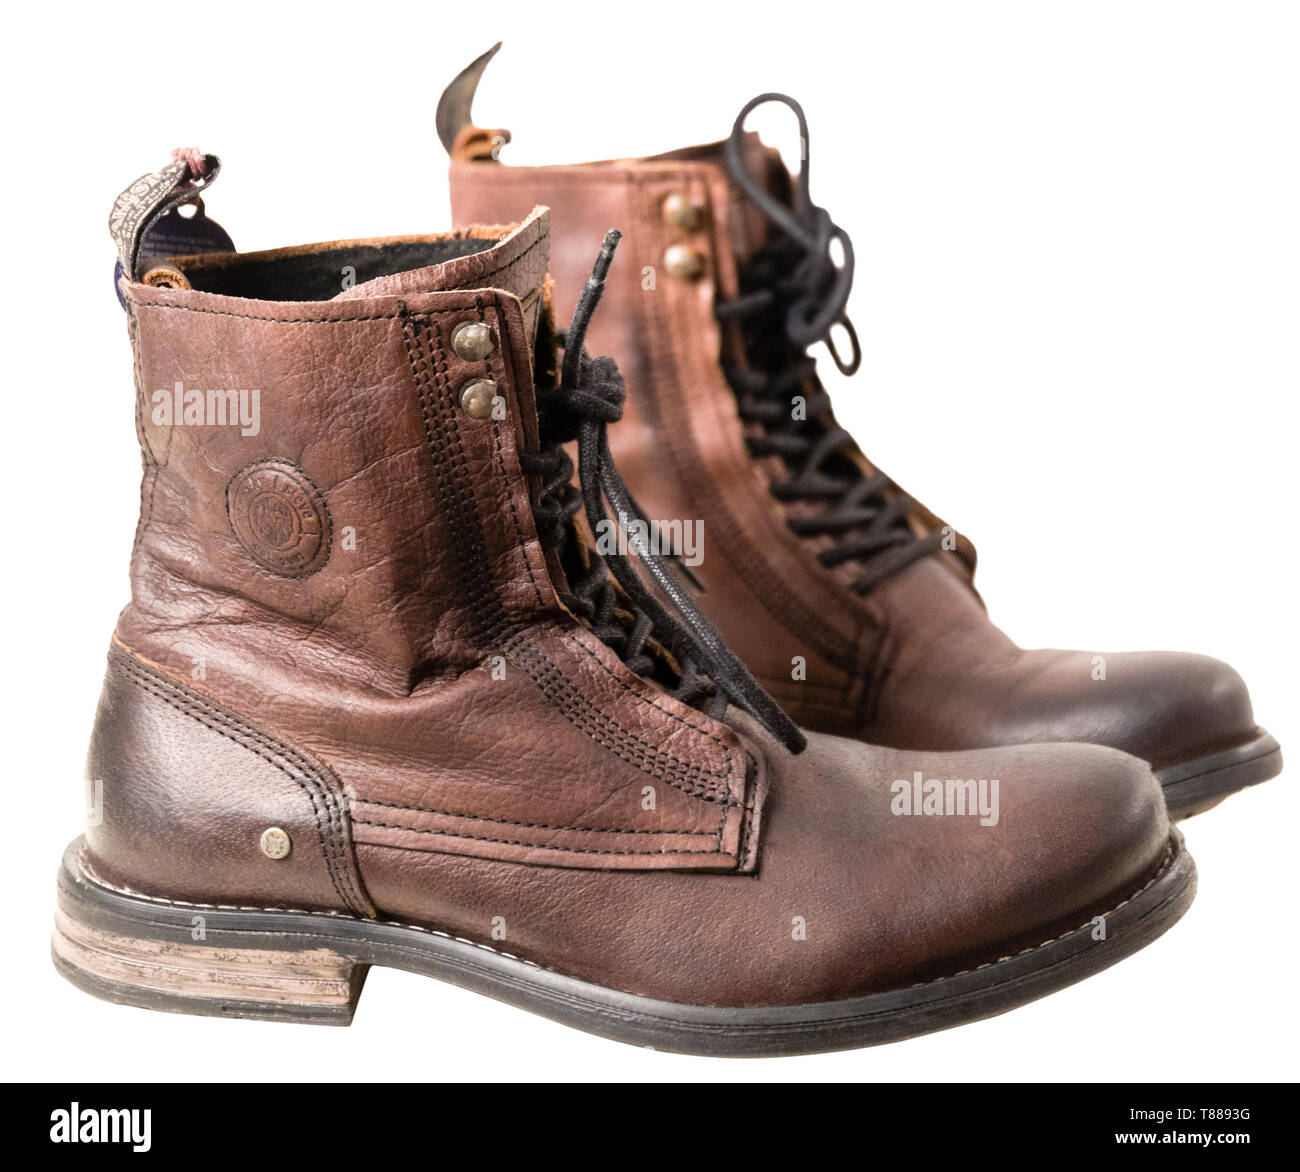 Boots Leather Boots Stockfotos & Boots Leather Boots Bilder